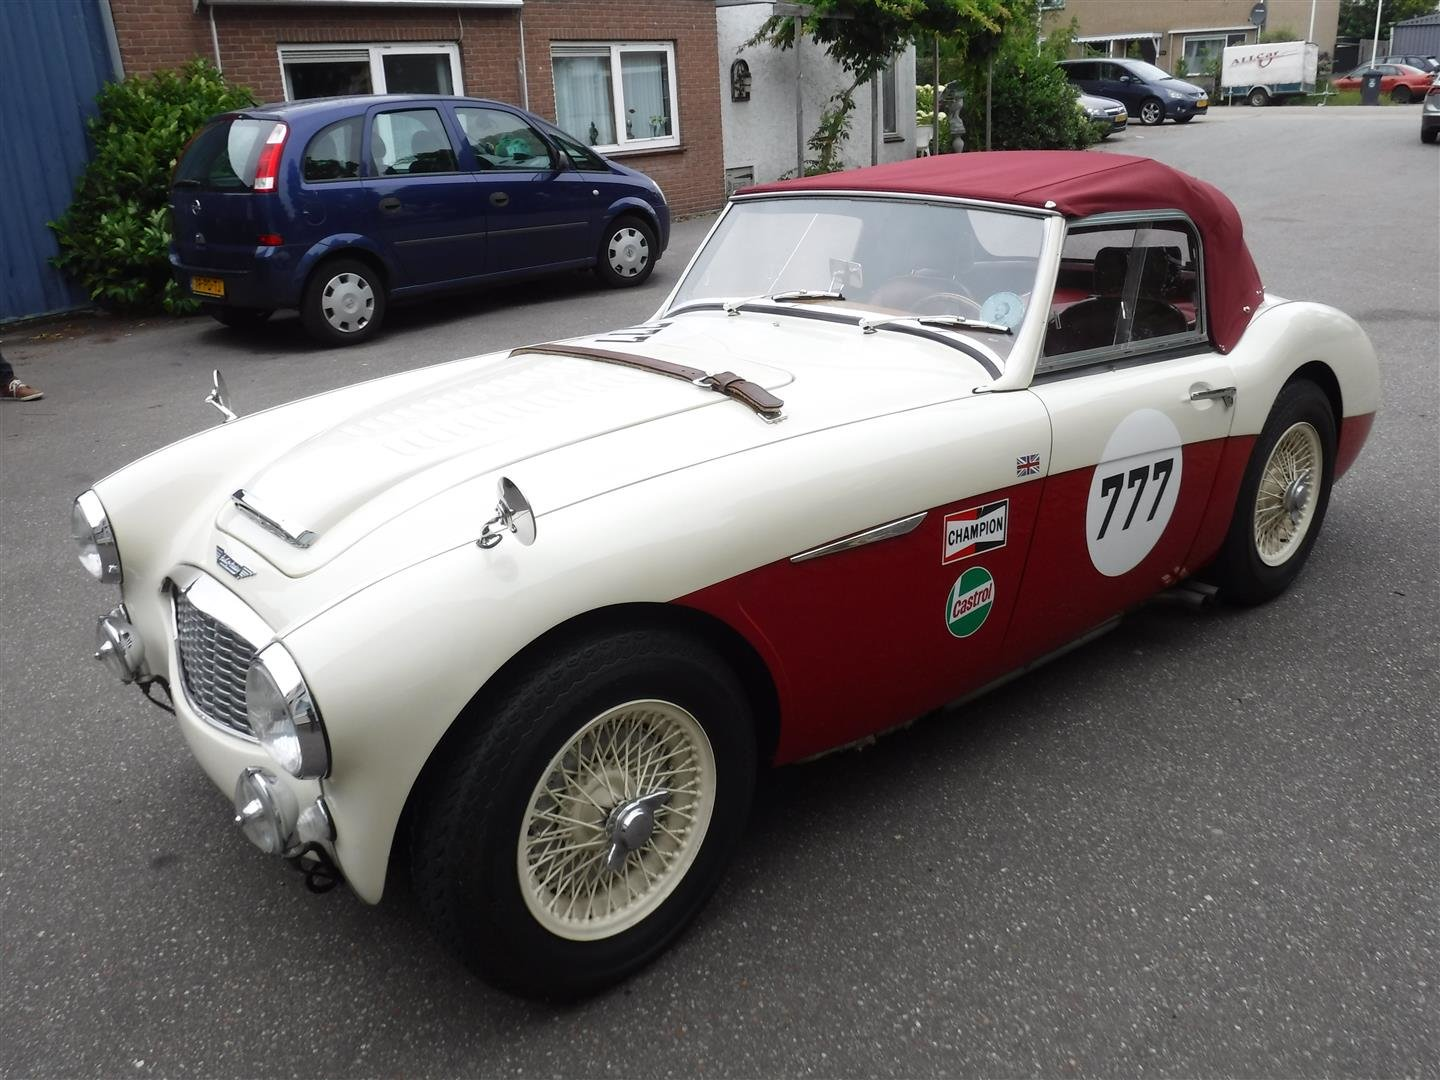 Austin Healey 100 / 6 rallye  6 cil.  2639cc  1957 For Sale (picture 2 of 6)